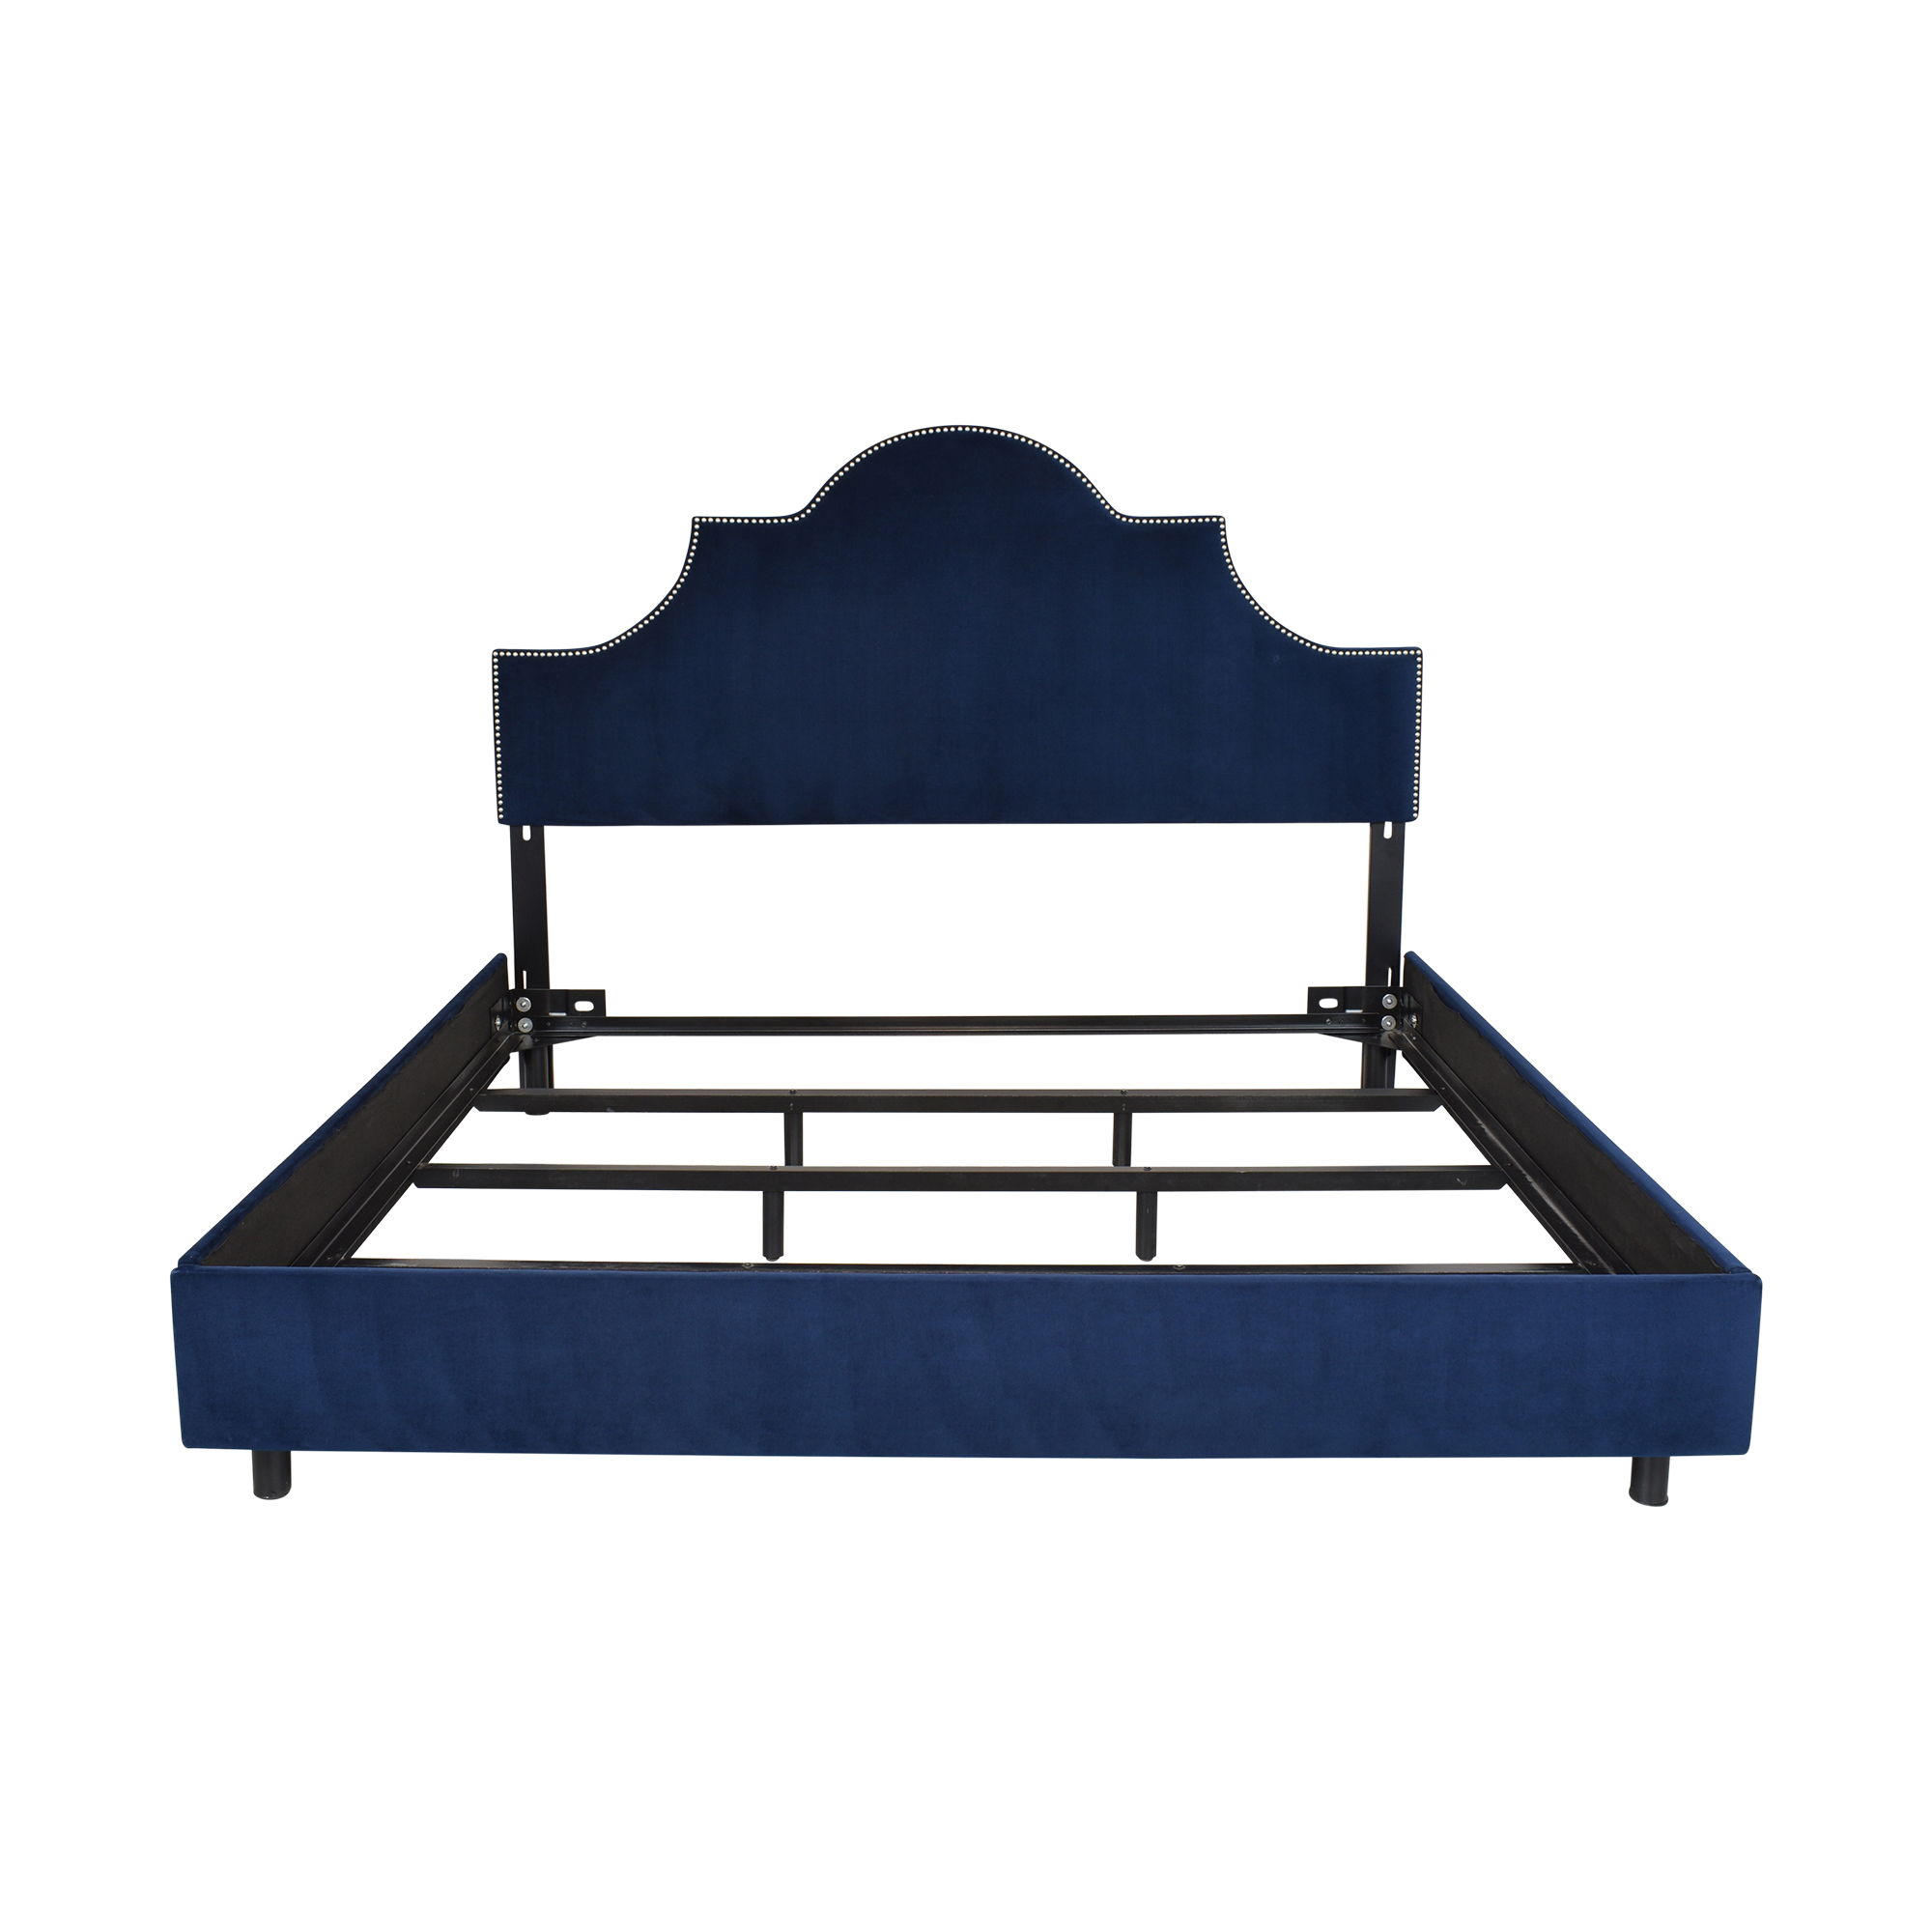 Skyline Nailhead King Bed with Headboard / Beds